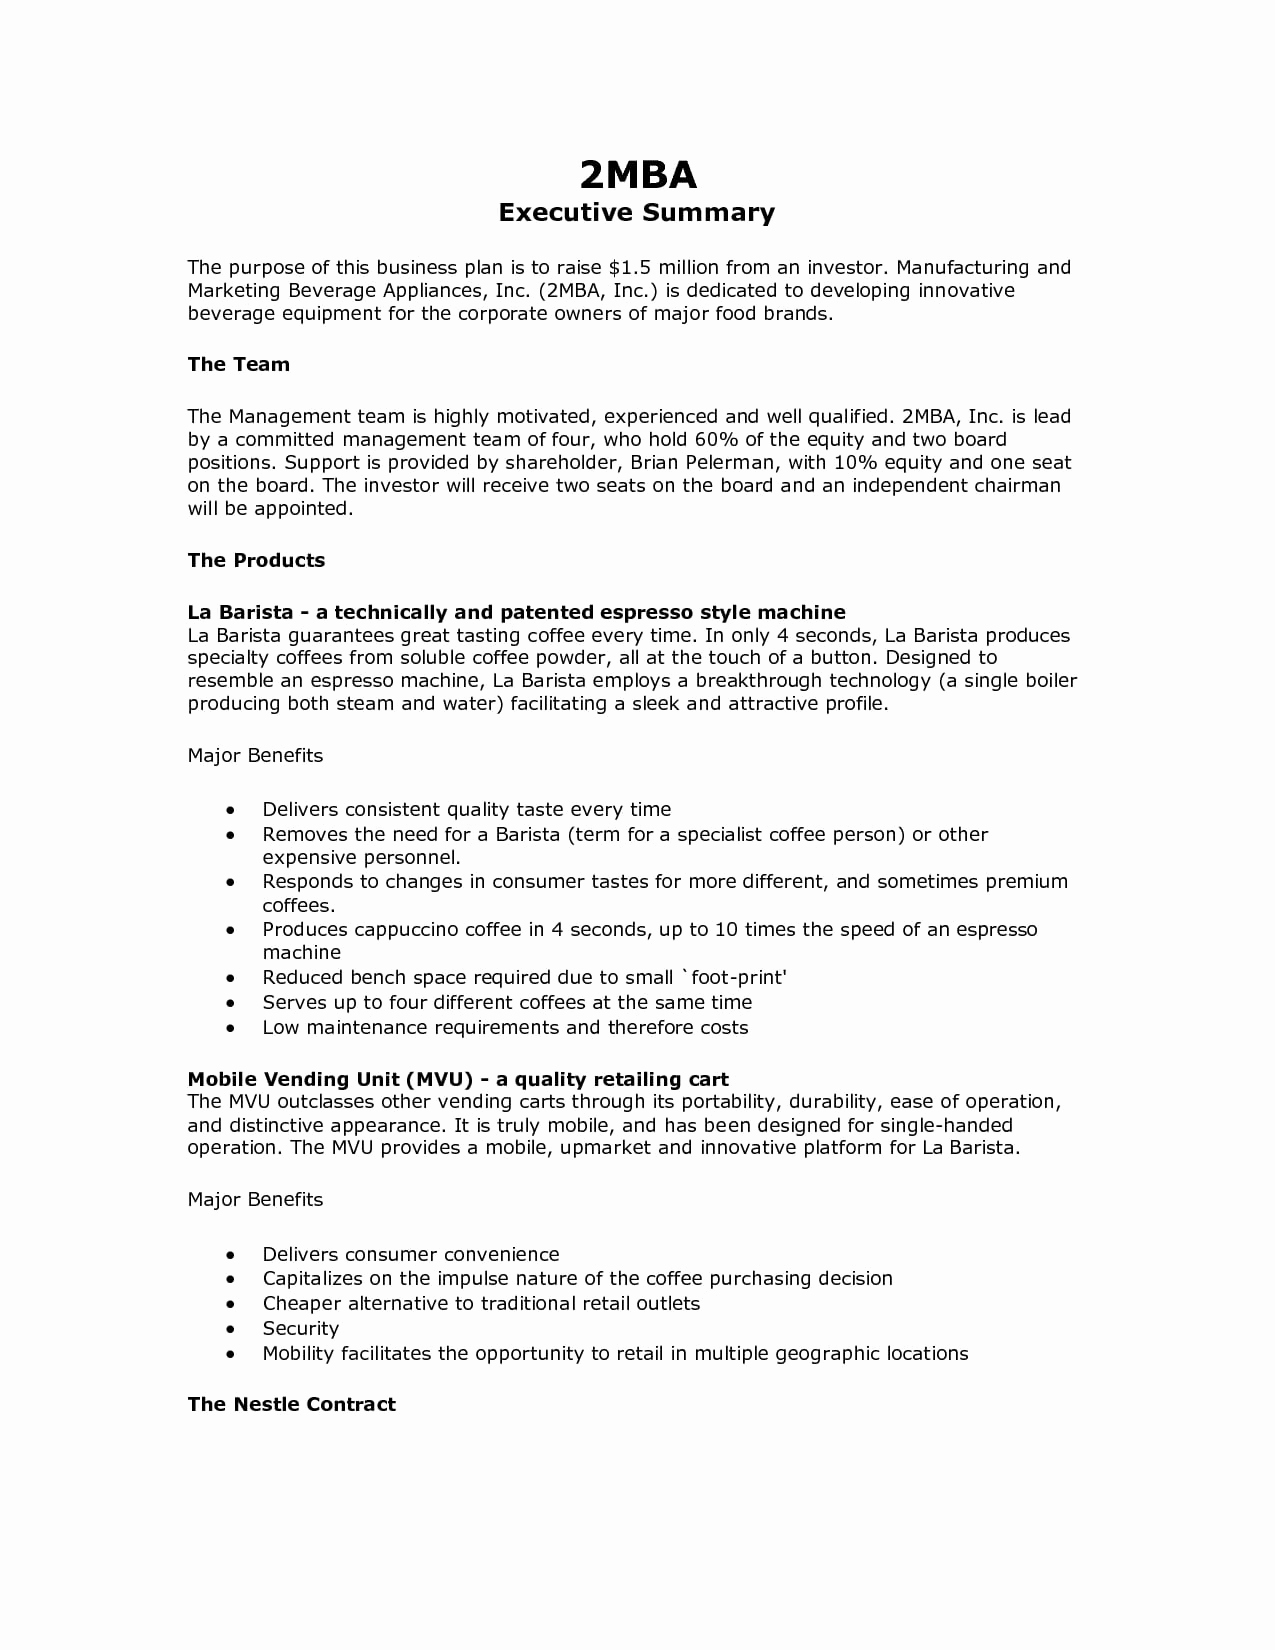 Example Of An Executive Summary Awesome 9 Executive Summary Marketing Plan Examples Pdf Word